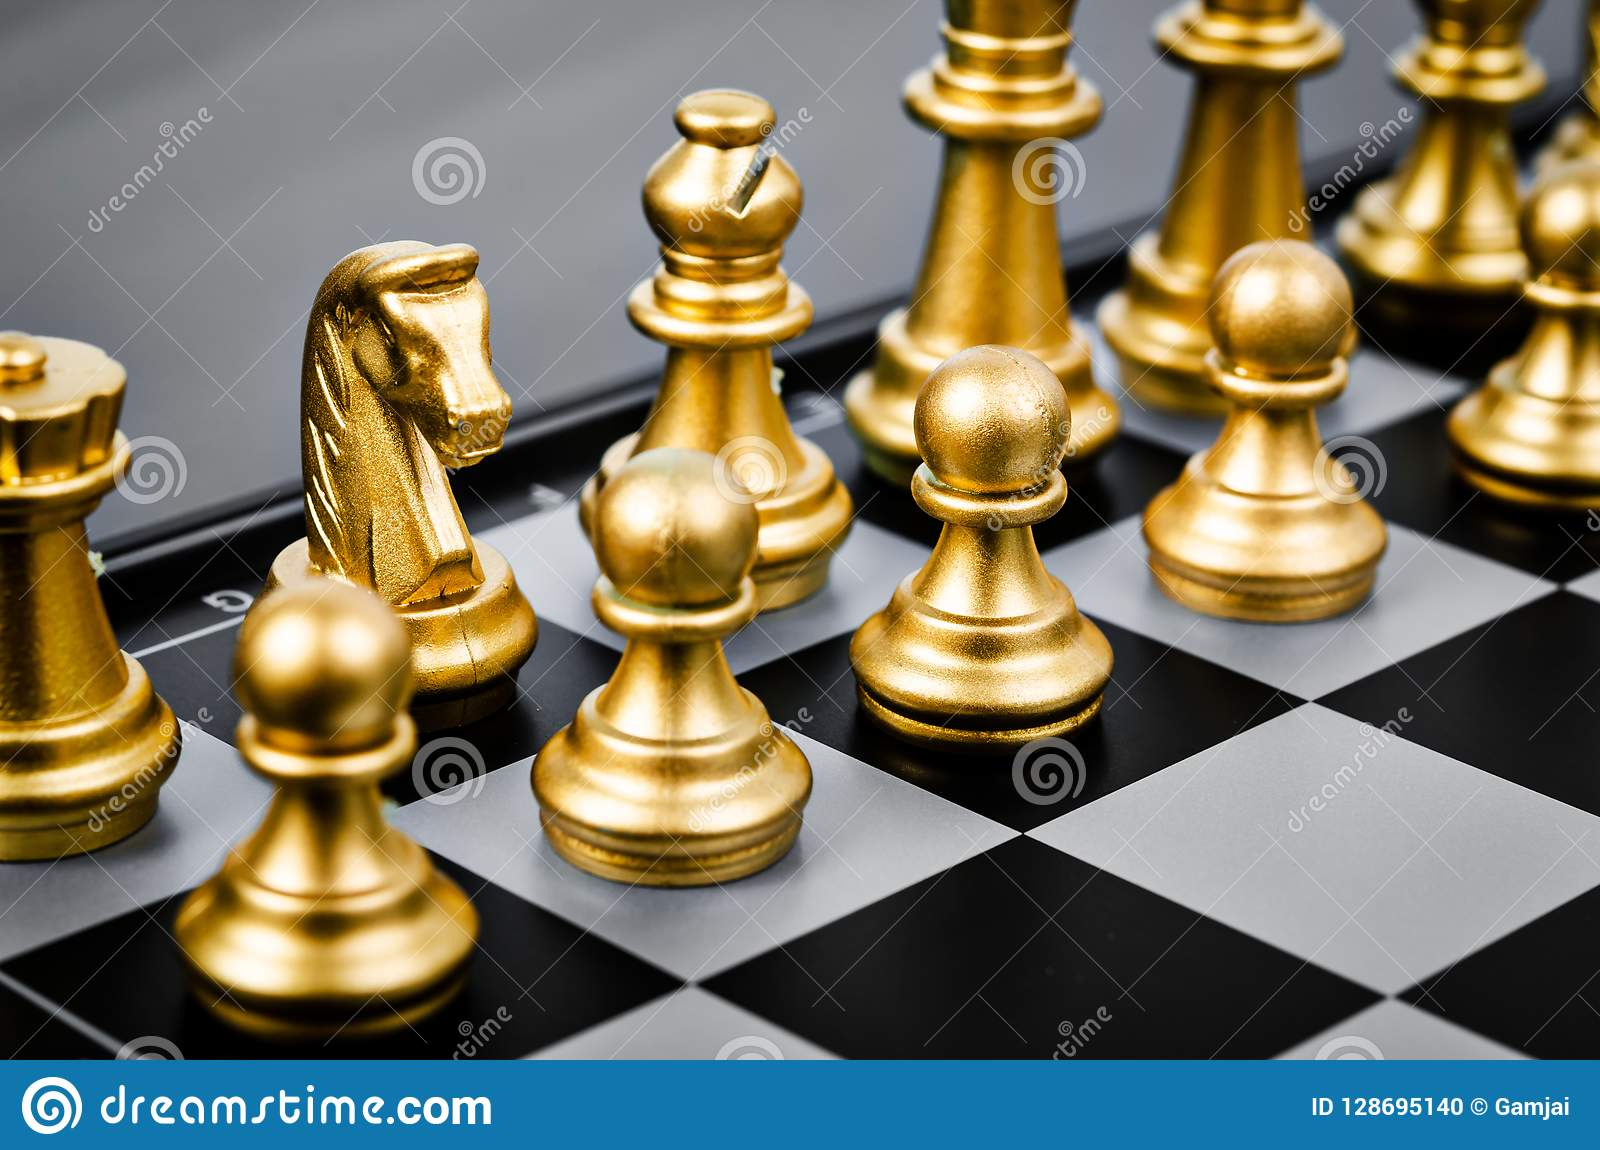 Gold Chess Pieces Gold Chess Pieces Stock Photo Image Of Pawn Metal 128695140